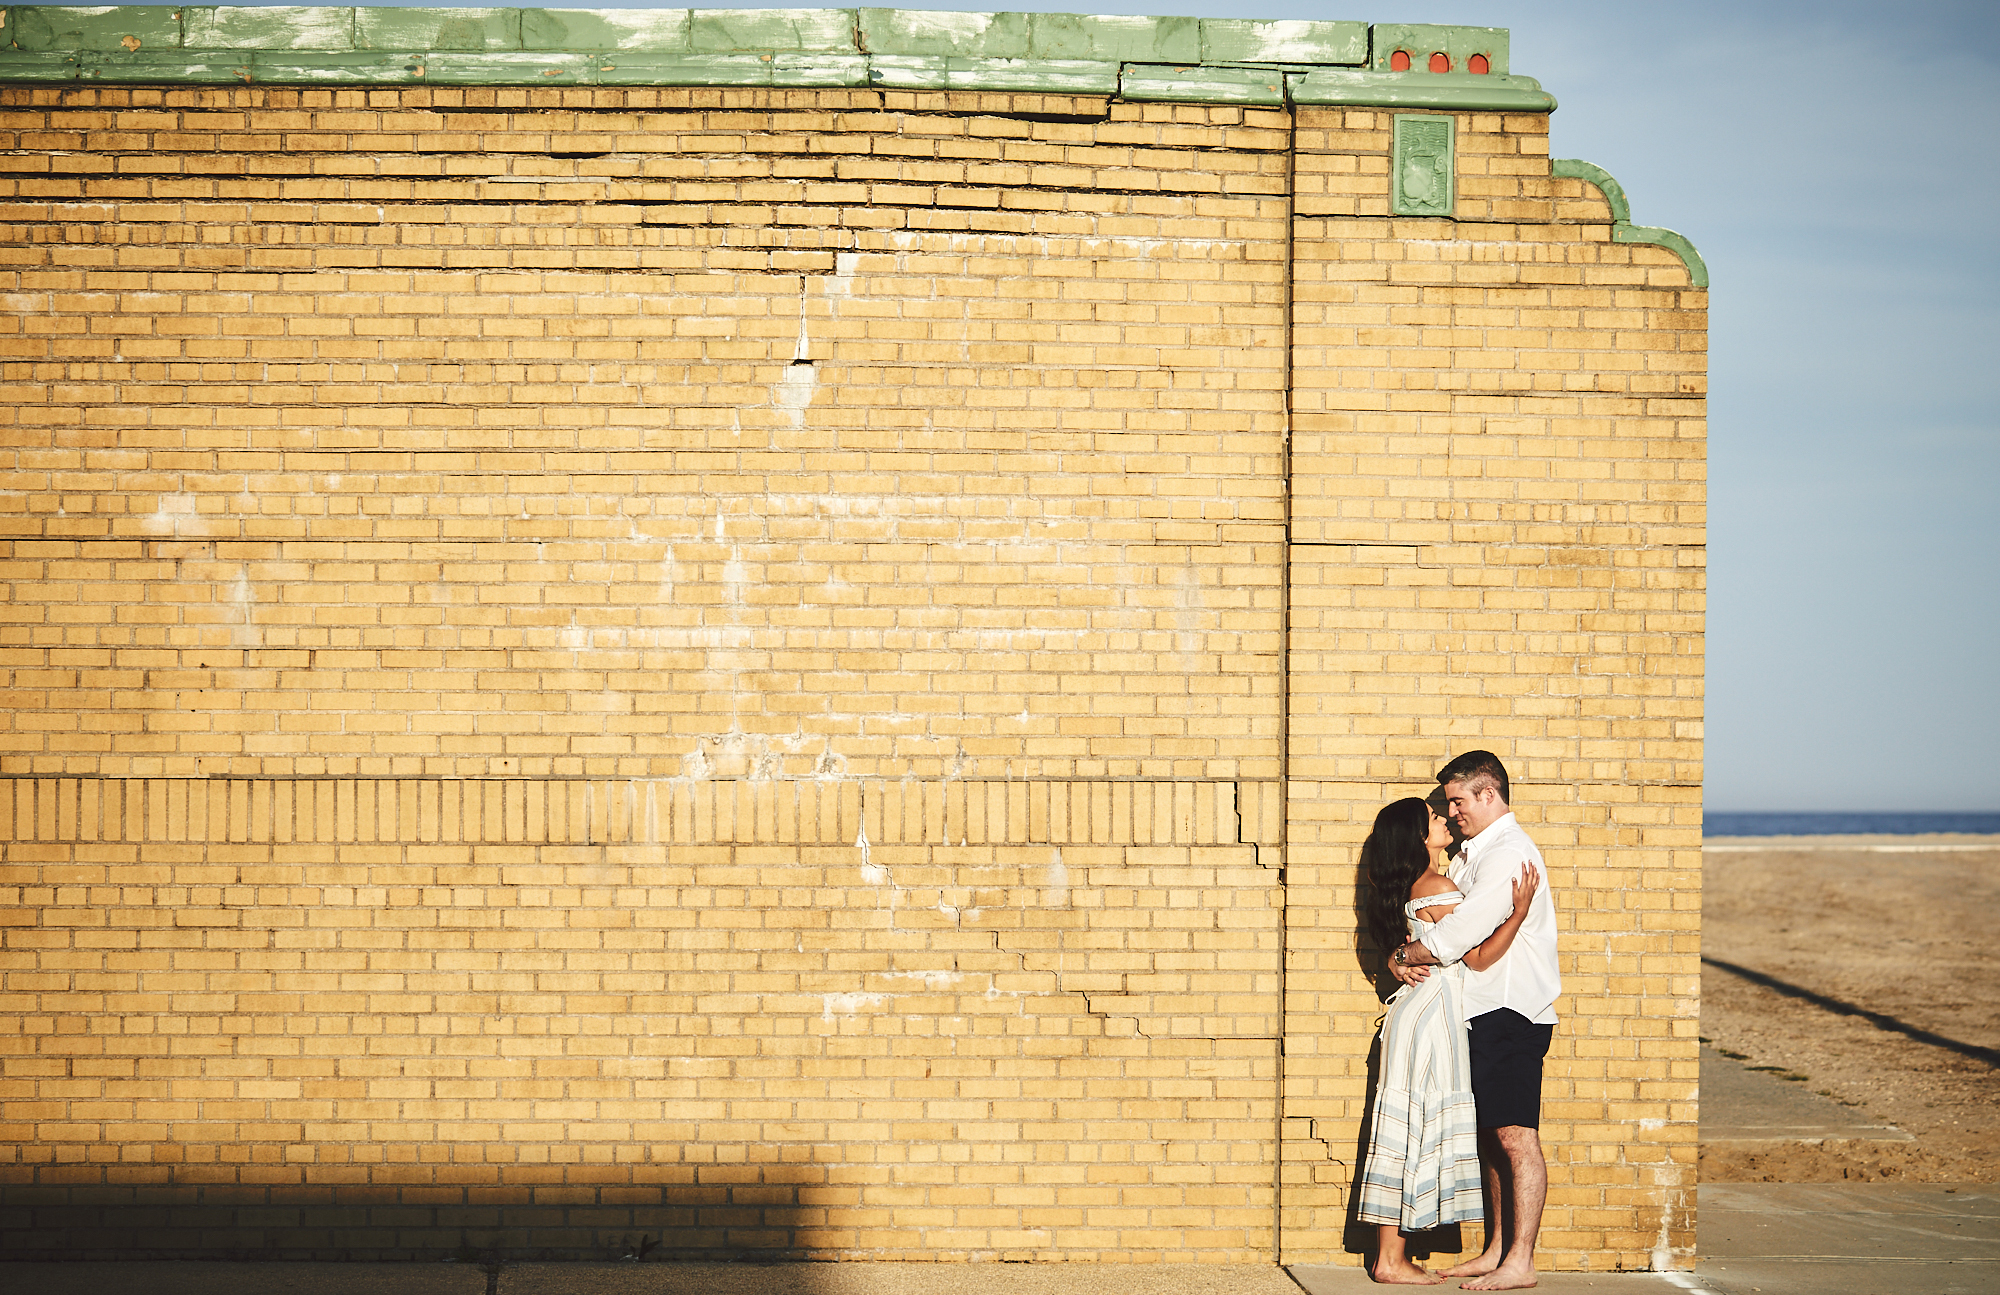 190516_SummerSpringLakeNJDivineParkEngagementSession_By_BriJohnsonWeddings0009.jpg